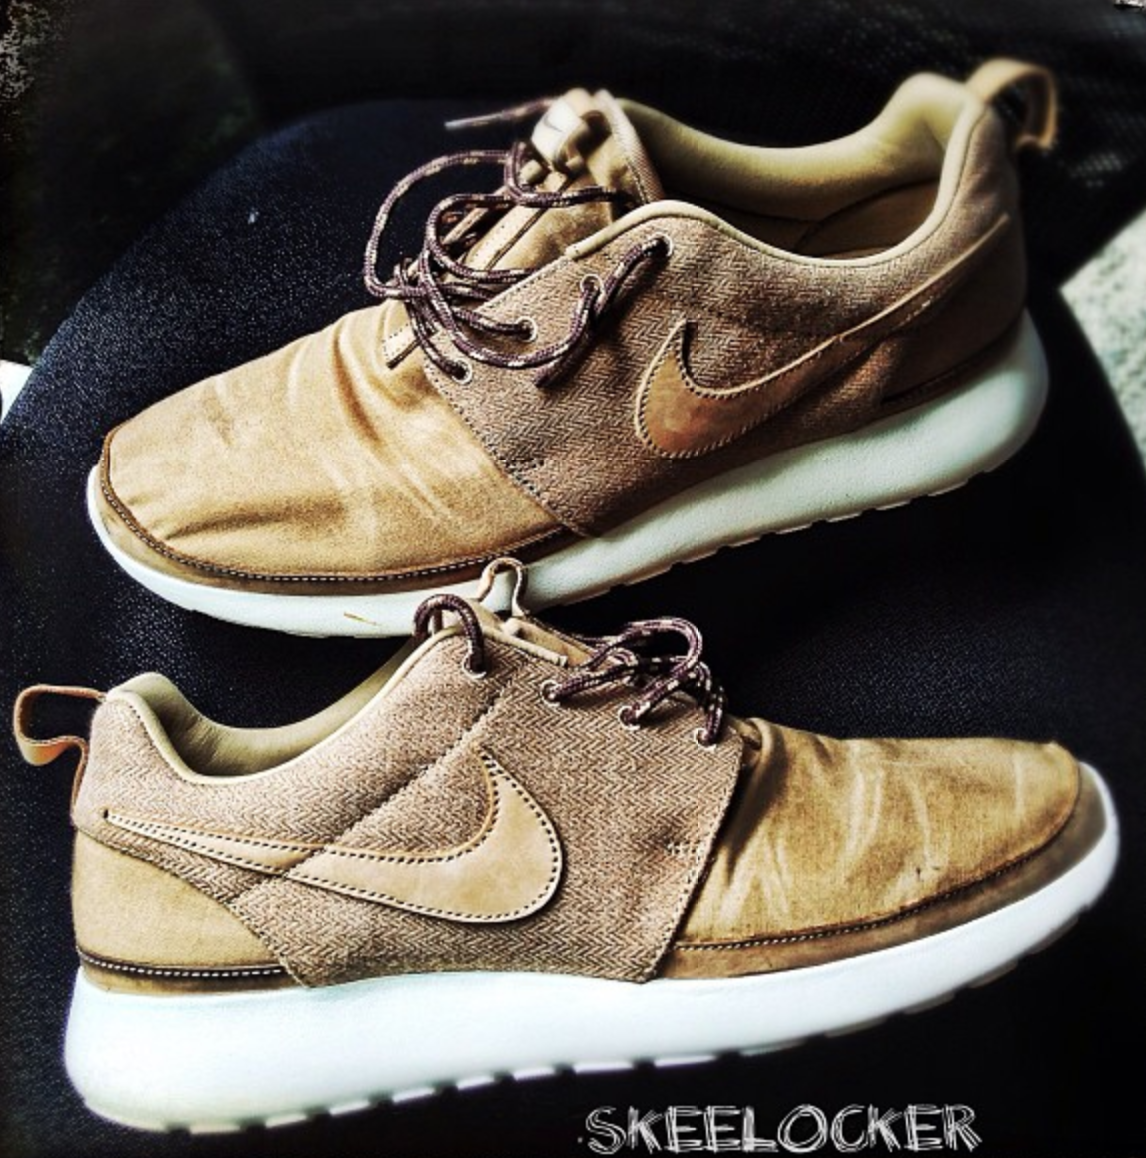 #SkeeLocker 041/365: Nike Roshe Run Premium NRG Khaki QS... Perfect for this long ass #Grammy day! A little more formal look + great comfort, see u live on the Grammy pre-show starting at 5pm EST / 2pm PST @AXStv